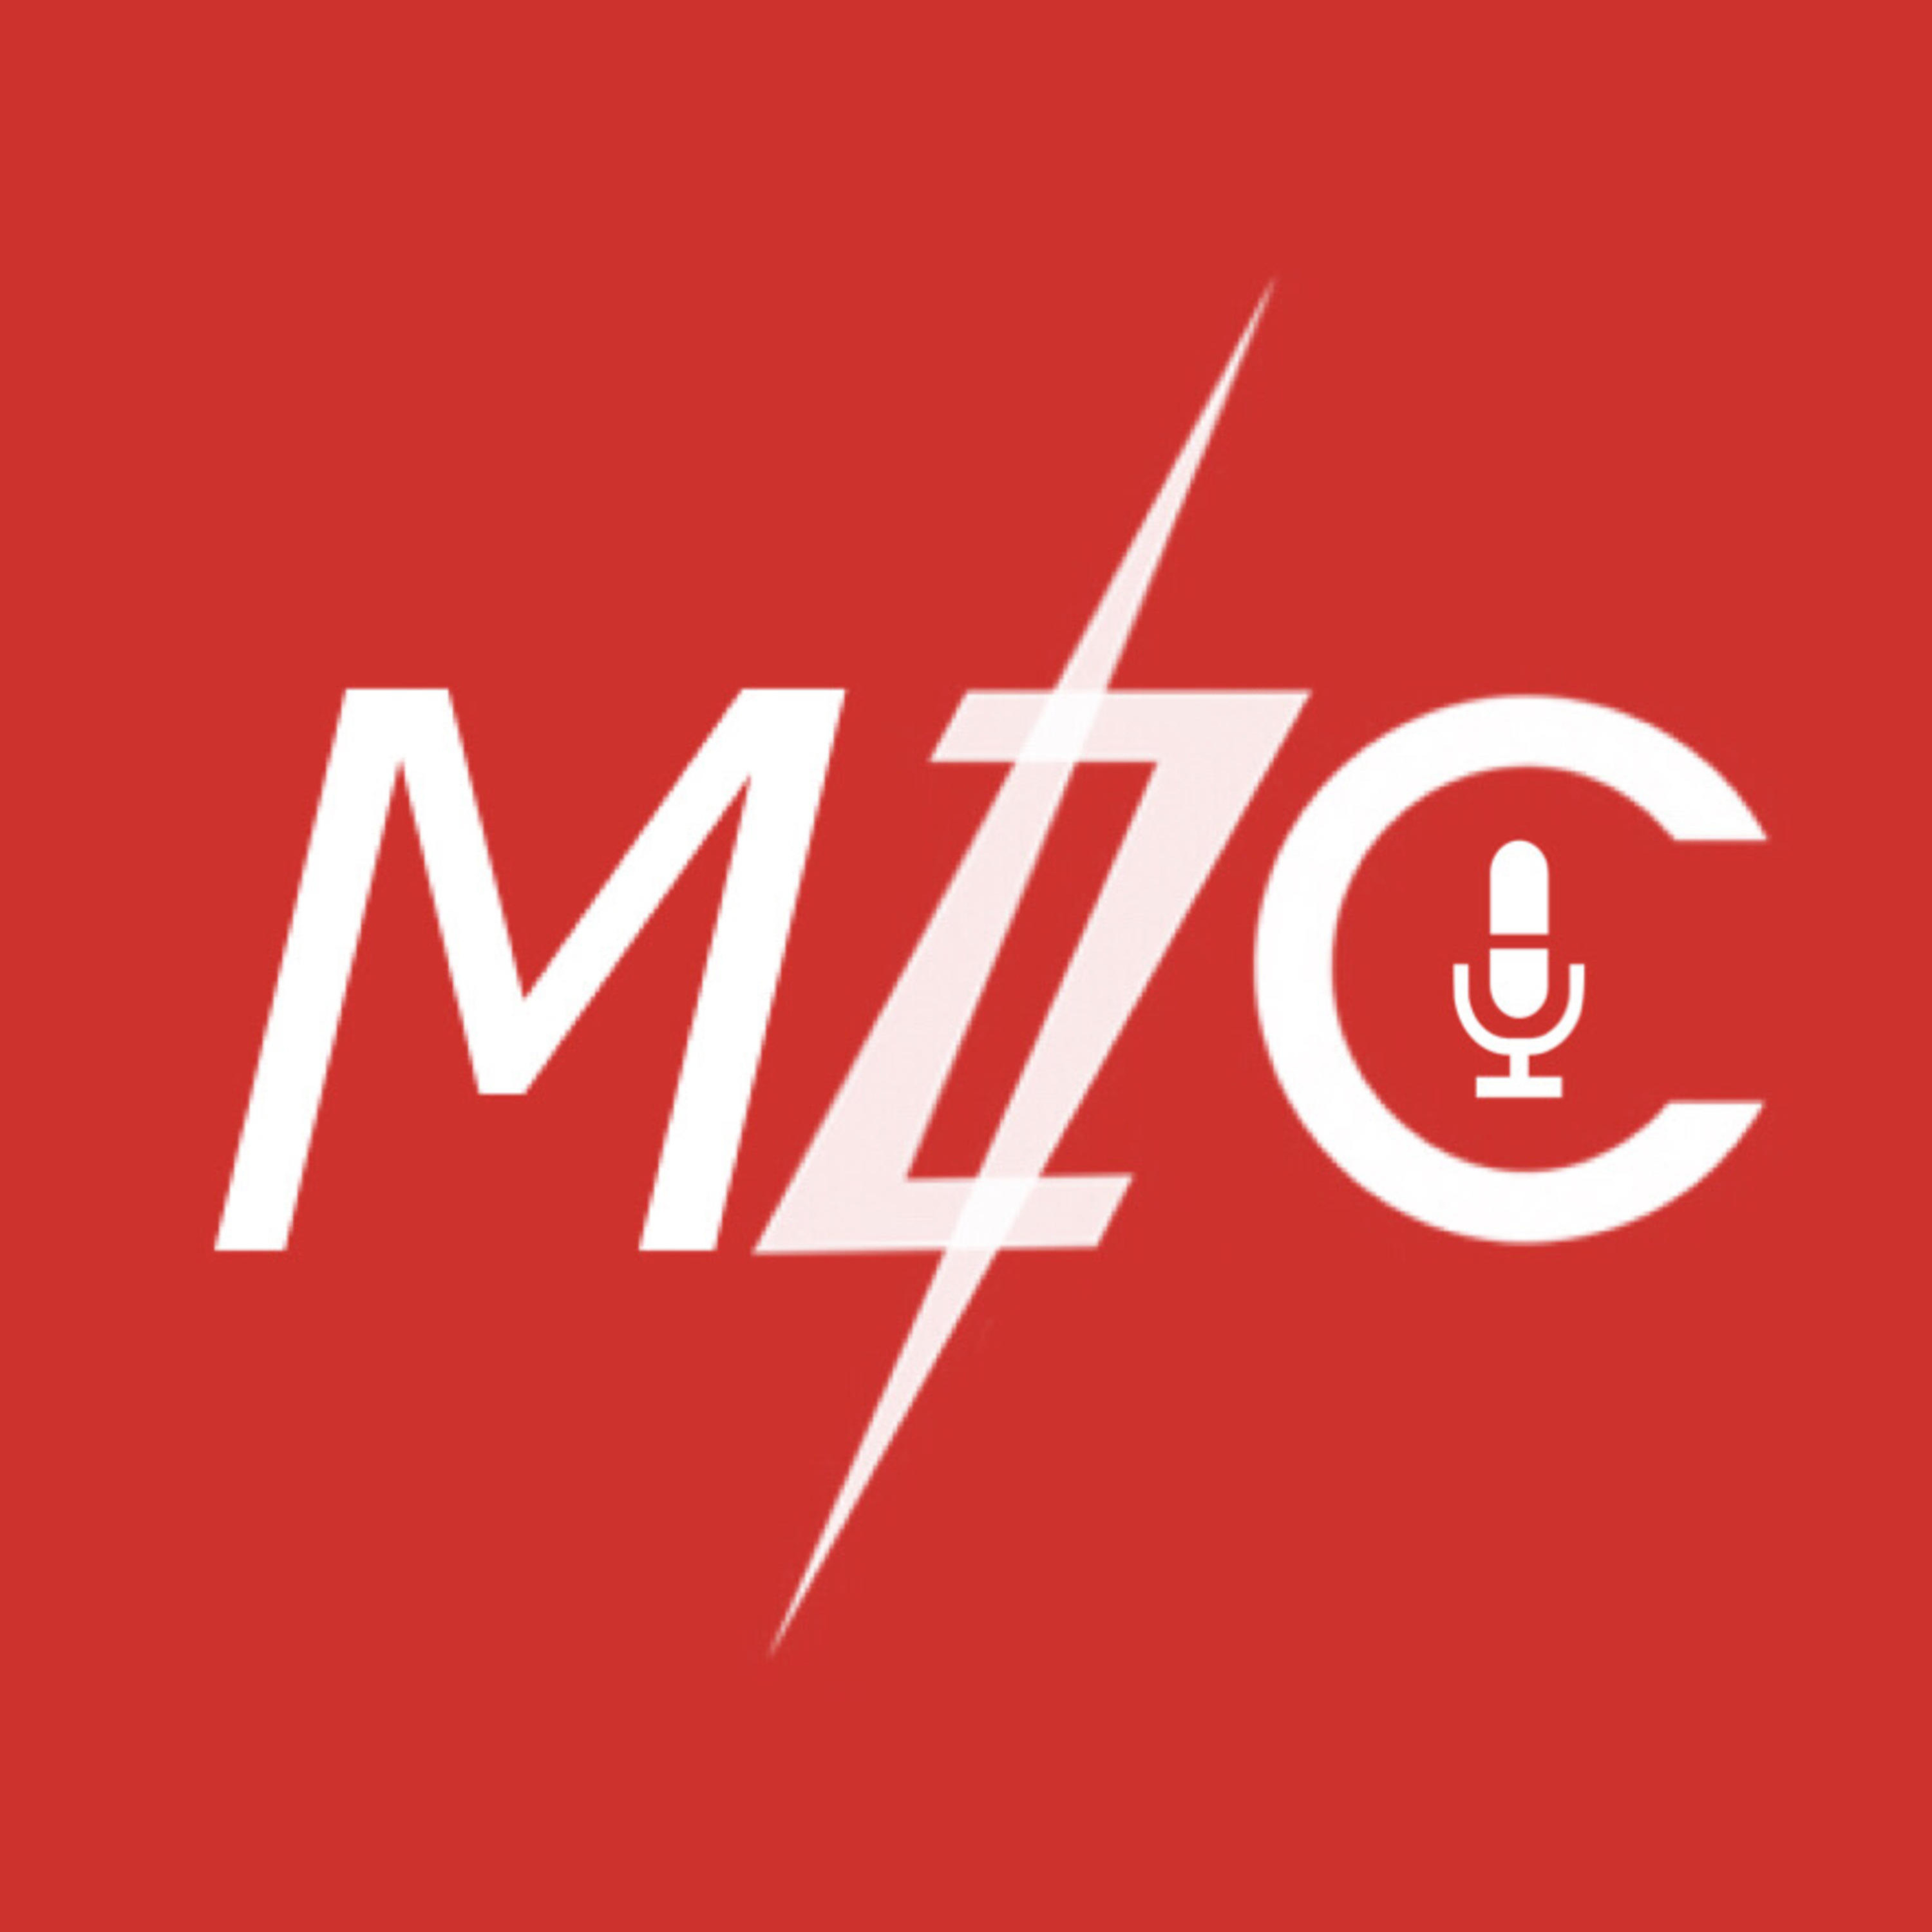 How To Deal With Criticism | The 7mlc Podcast Episode #9